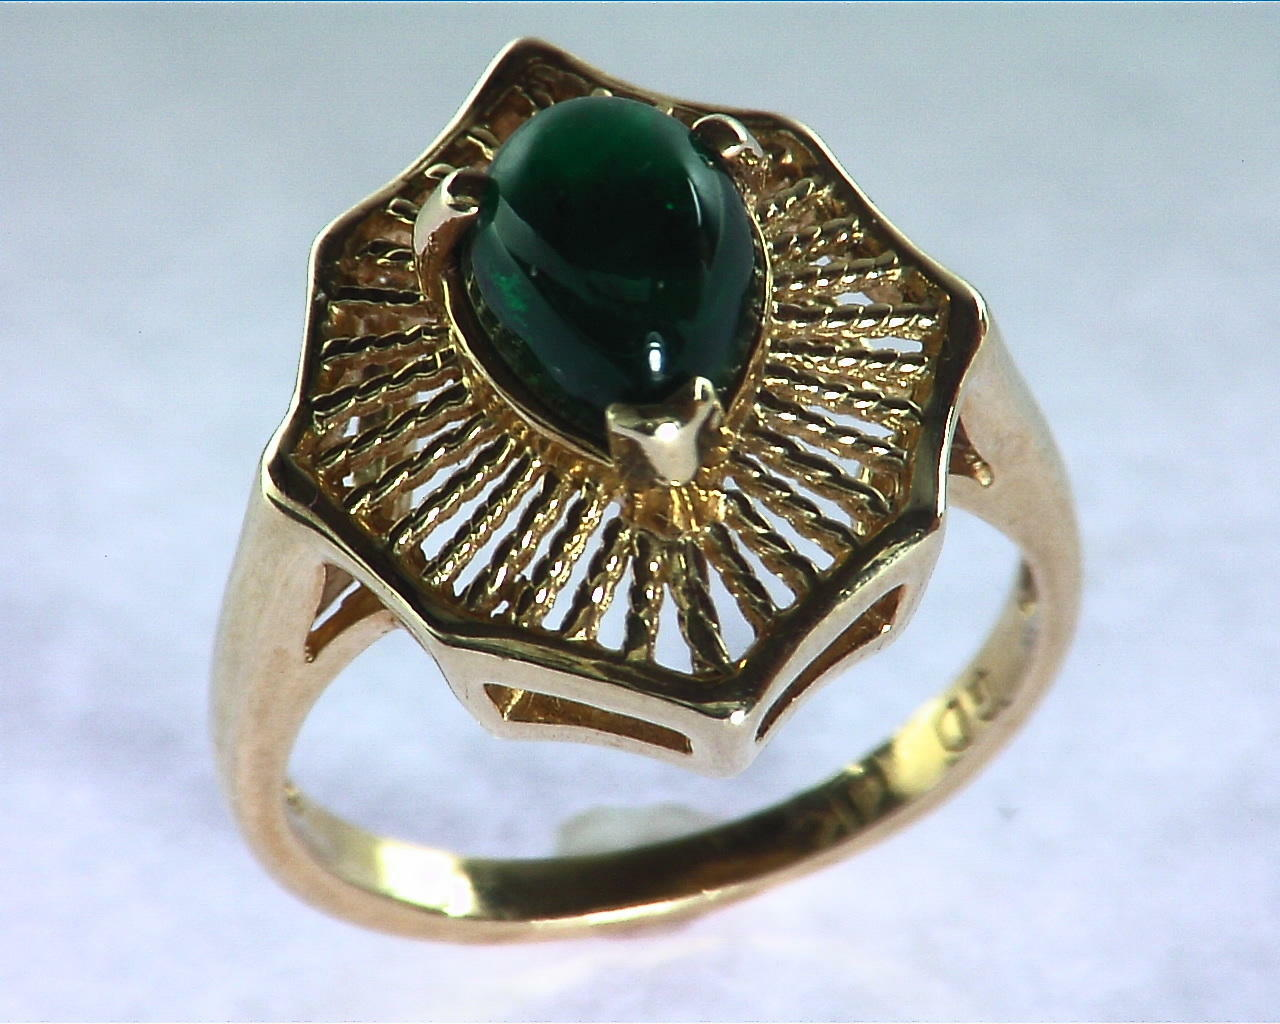 Emerald Engagement Ring in 14 kt Yellow Gold in a Beautiful Design RFK126 6